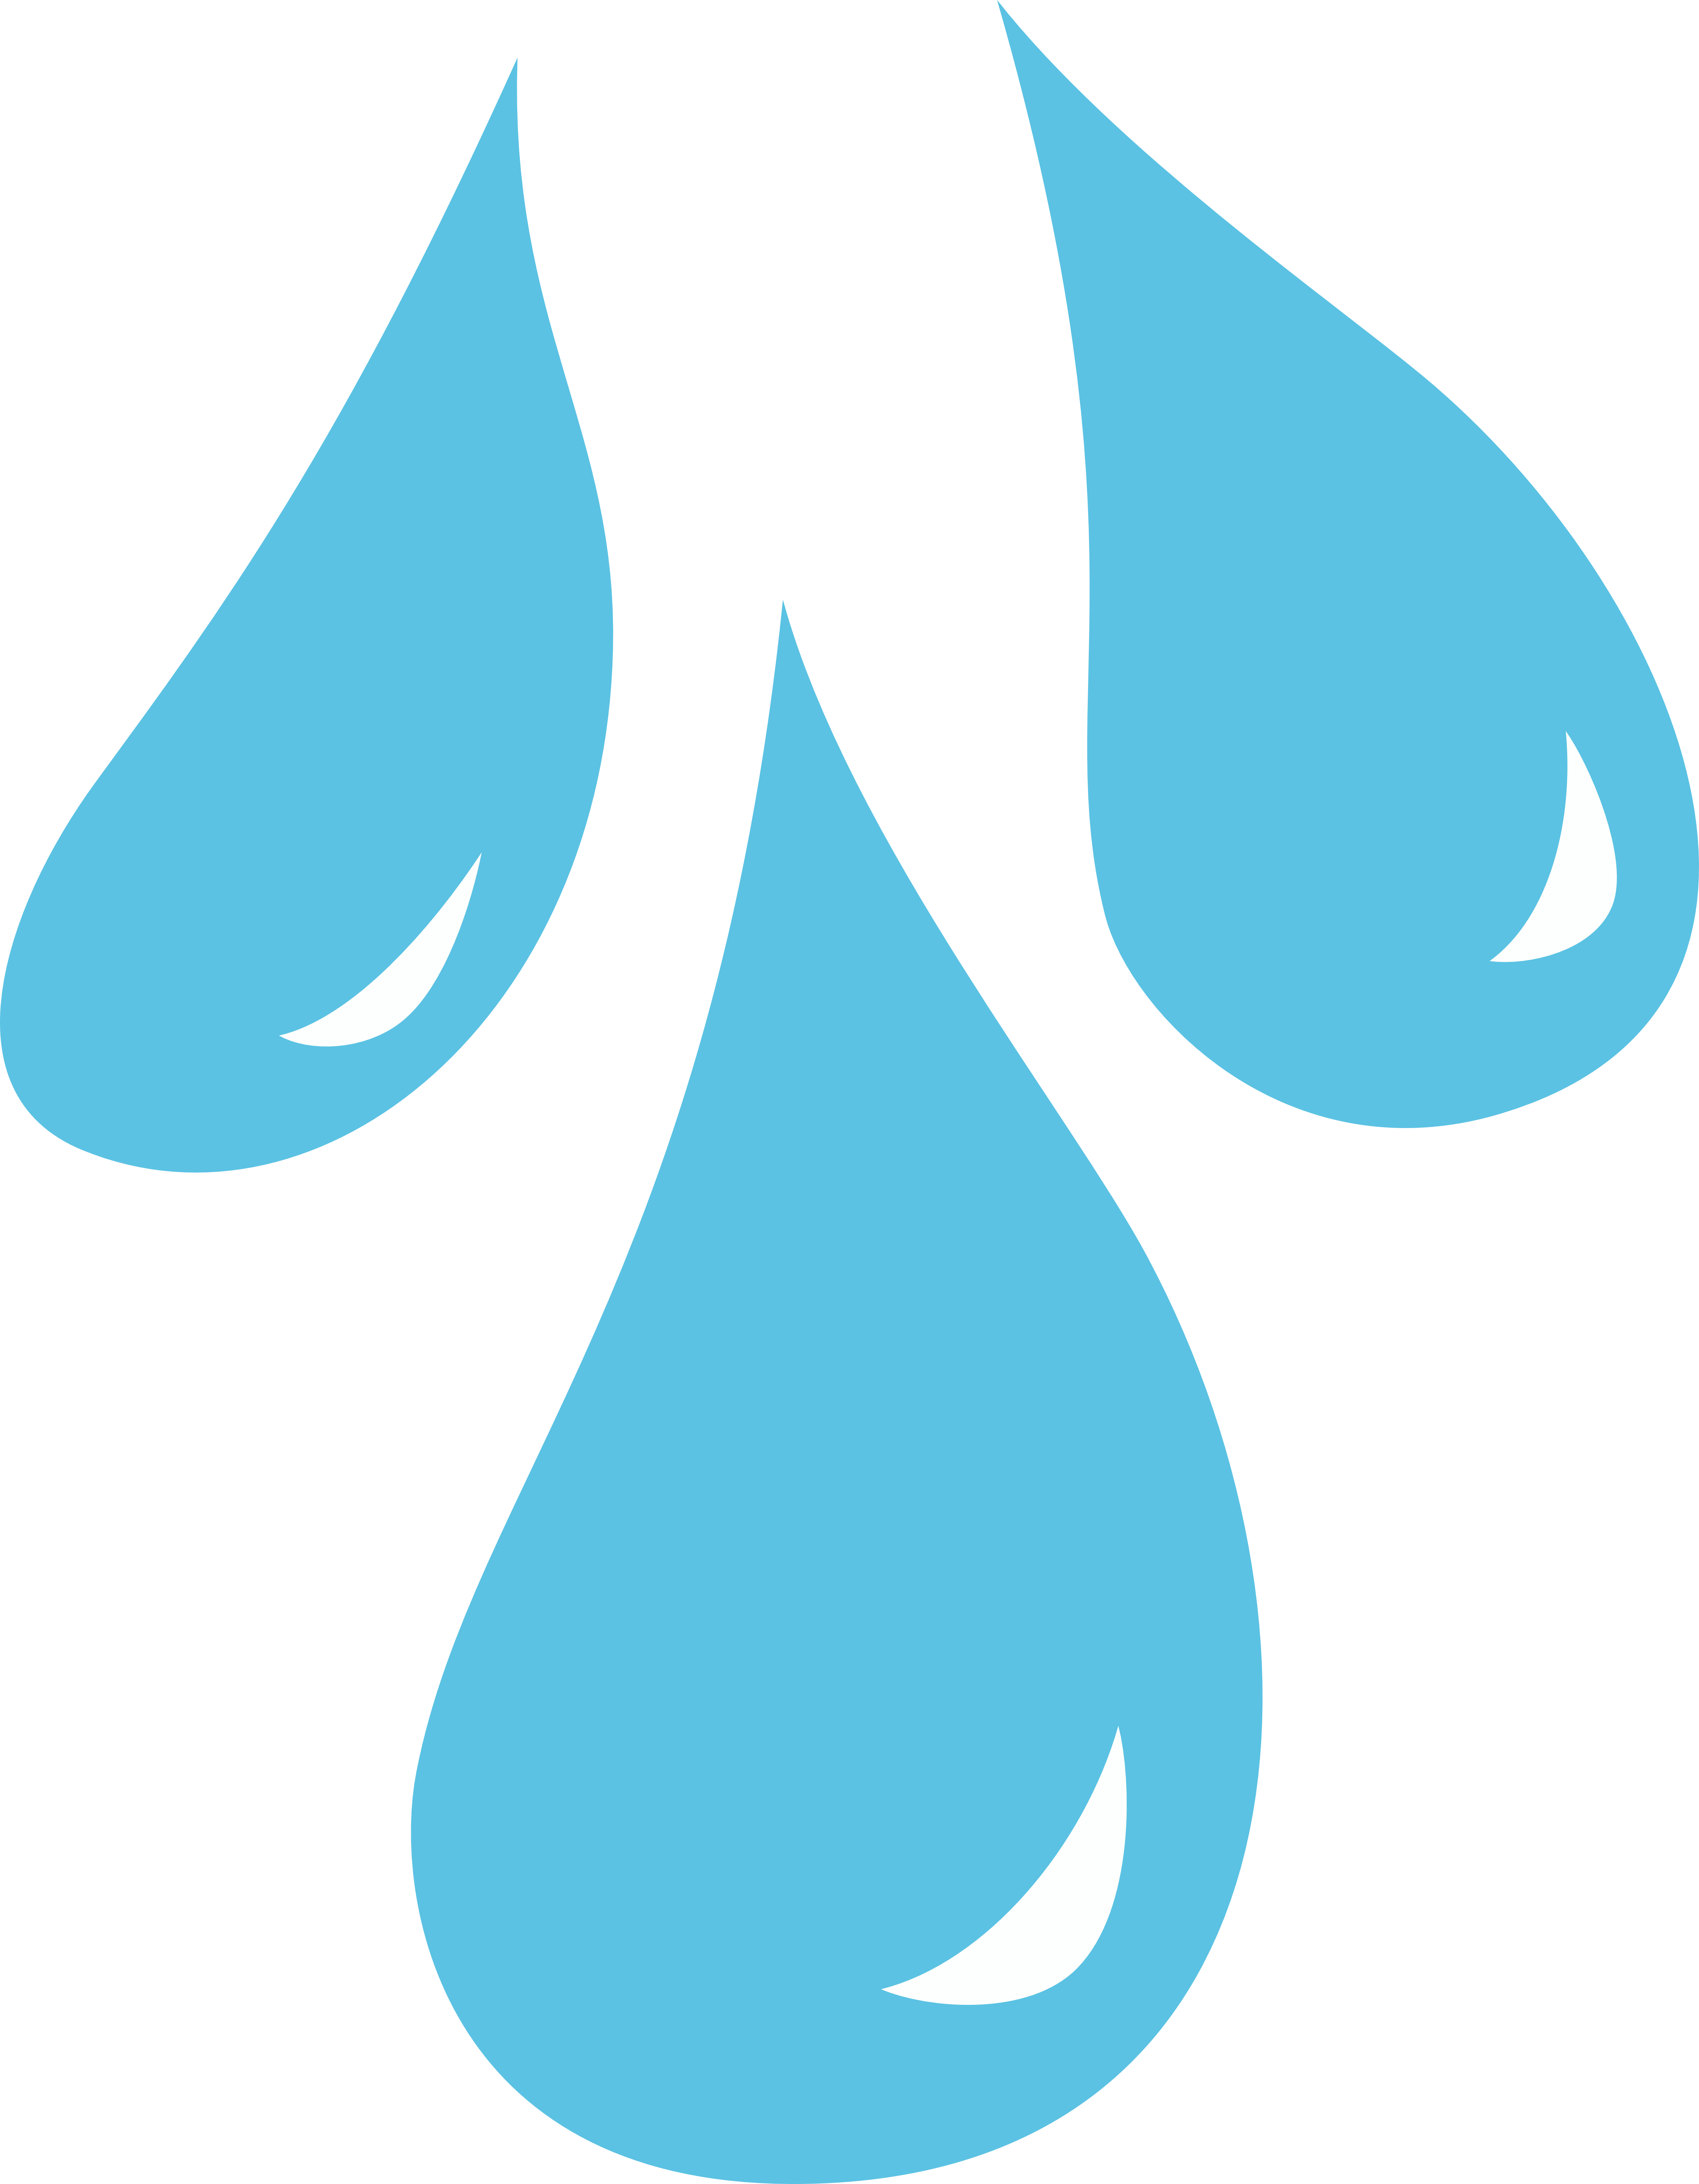 Free download clip art. Raindrops clipart water life banner black and white